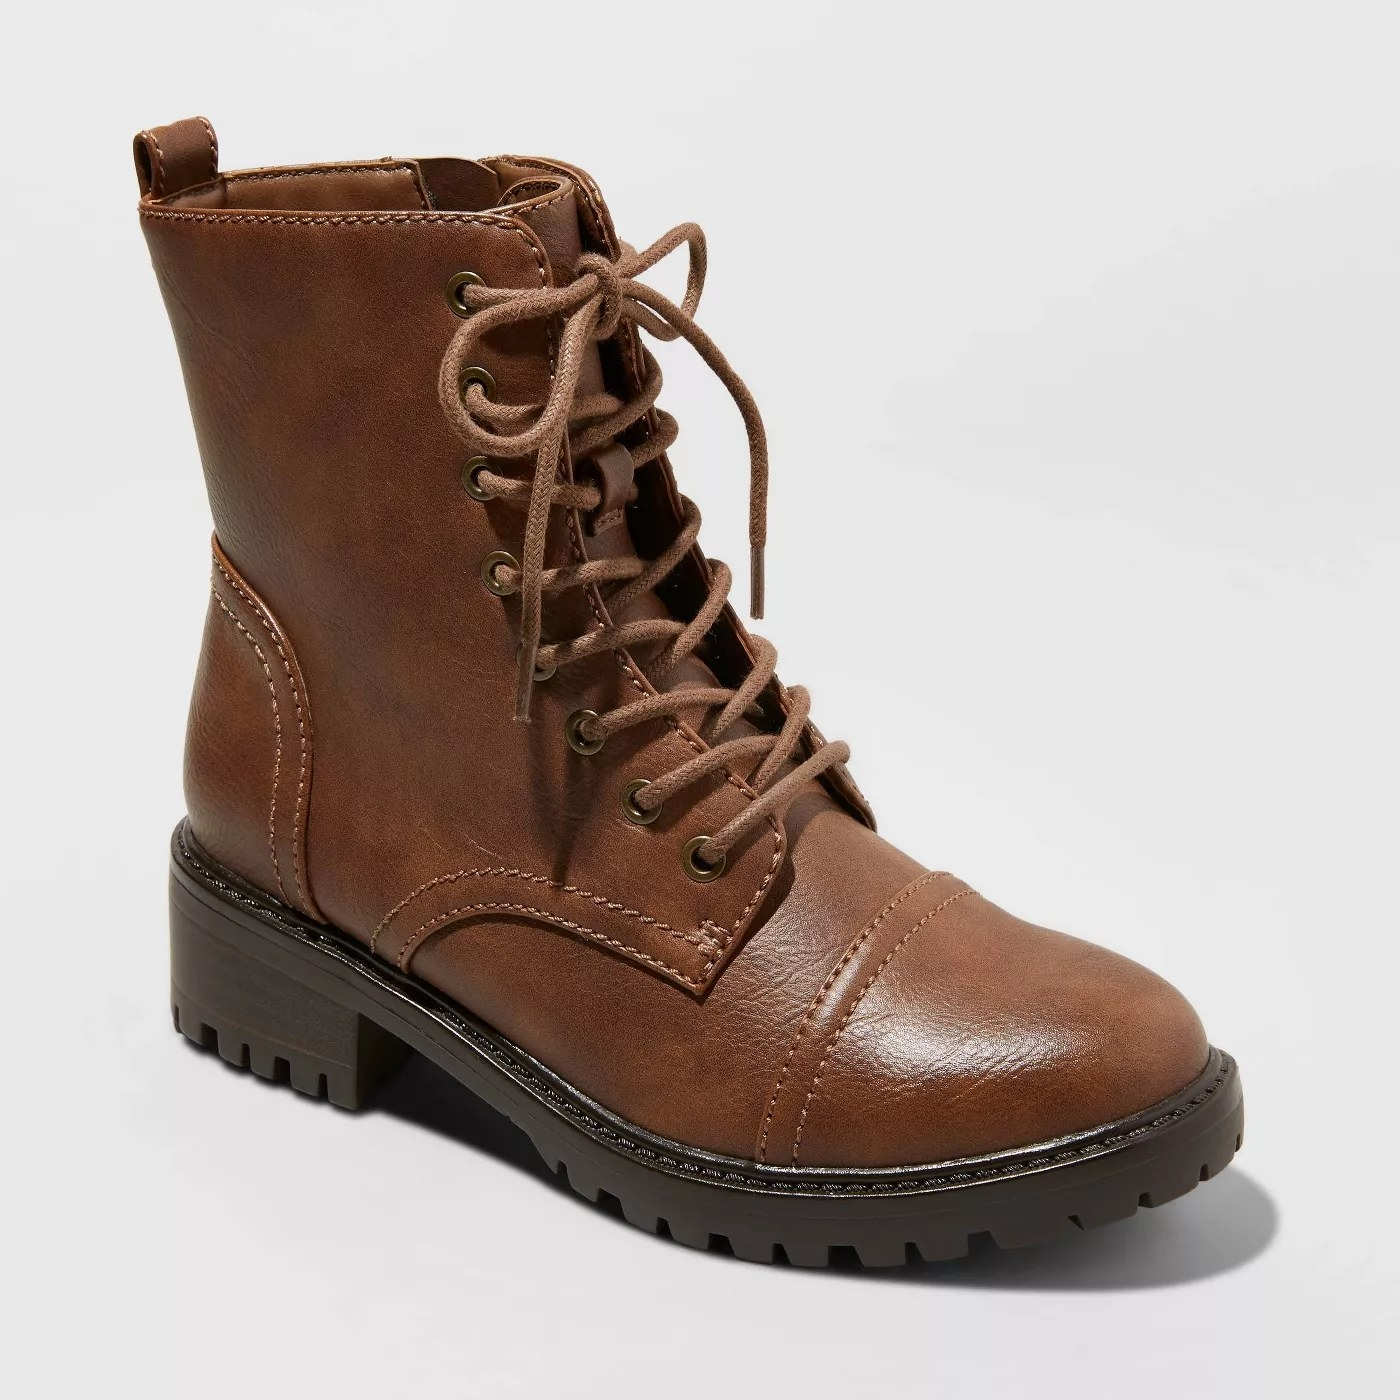 Short brown boots with laces. Sole is black.